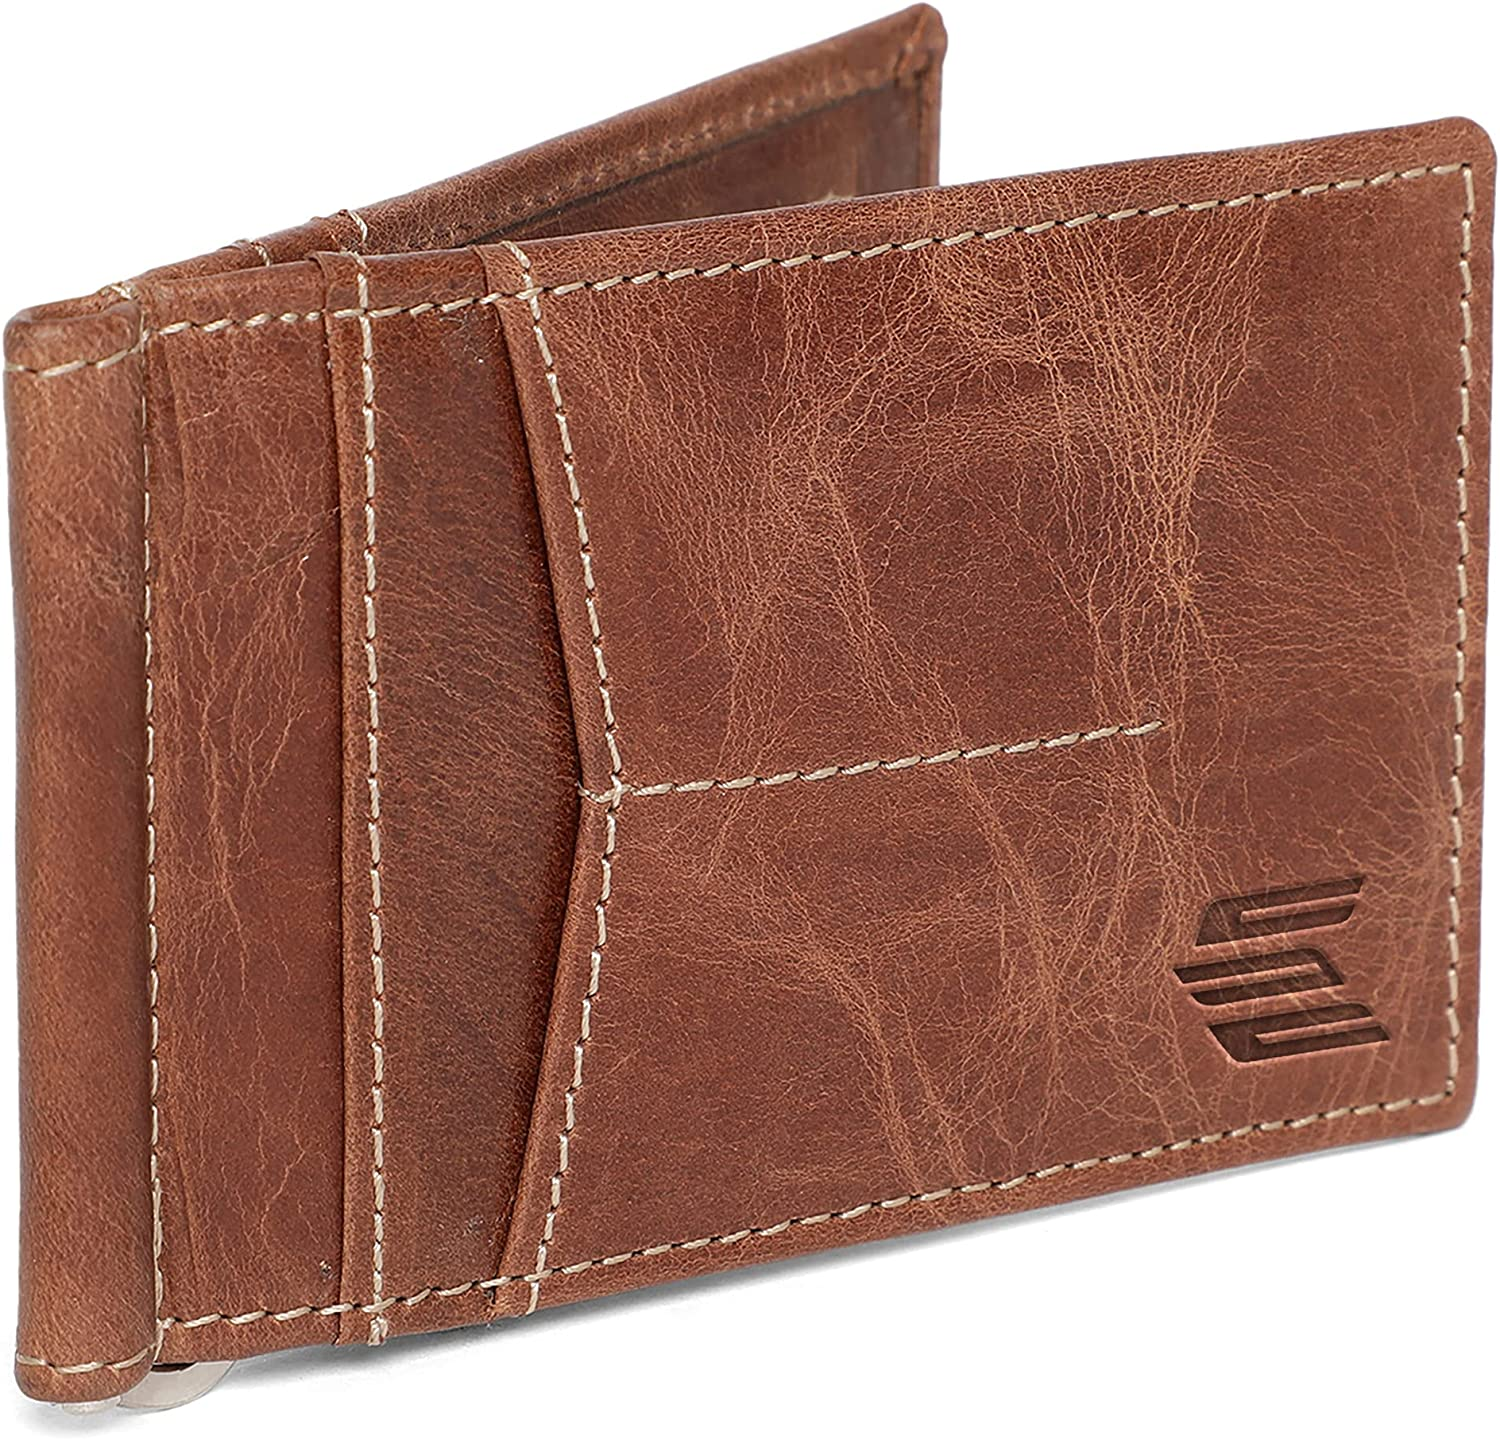 Elegante Pure Leather Wallet With Money Clip   Ultra Strong Stitching   Handcrafted Leather   RFID Blocking   Extra Capacity Bifold Wallet   Slim Billfold With 2 Card Slots,1 ID Window And 2 Front Pockets